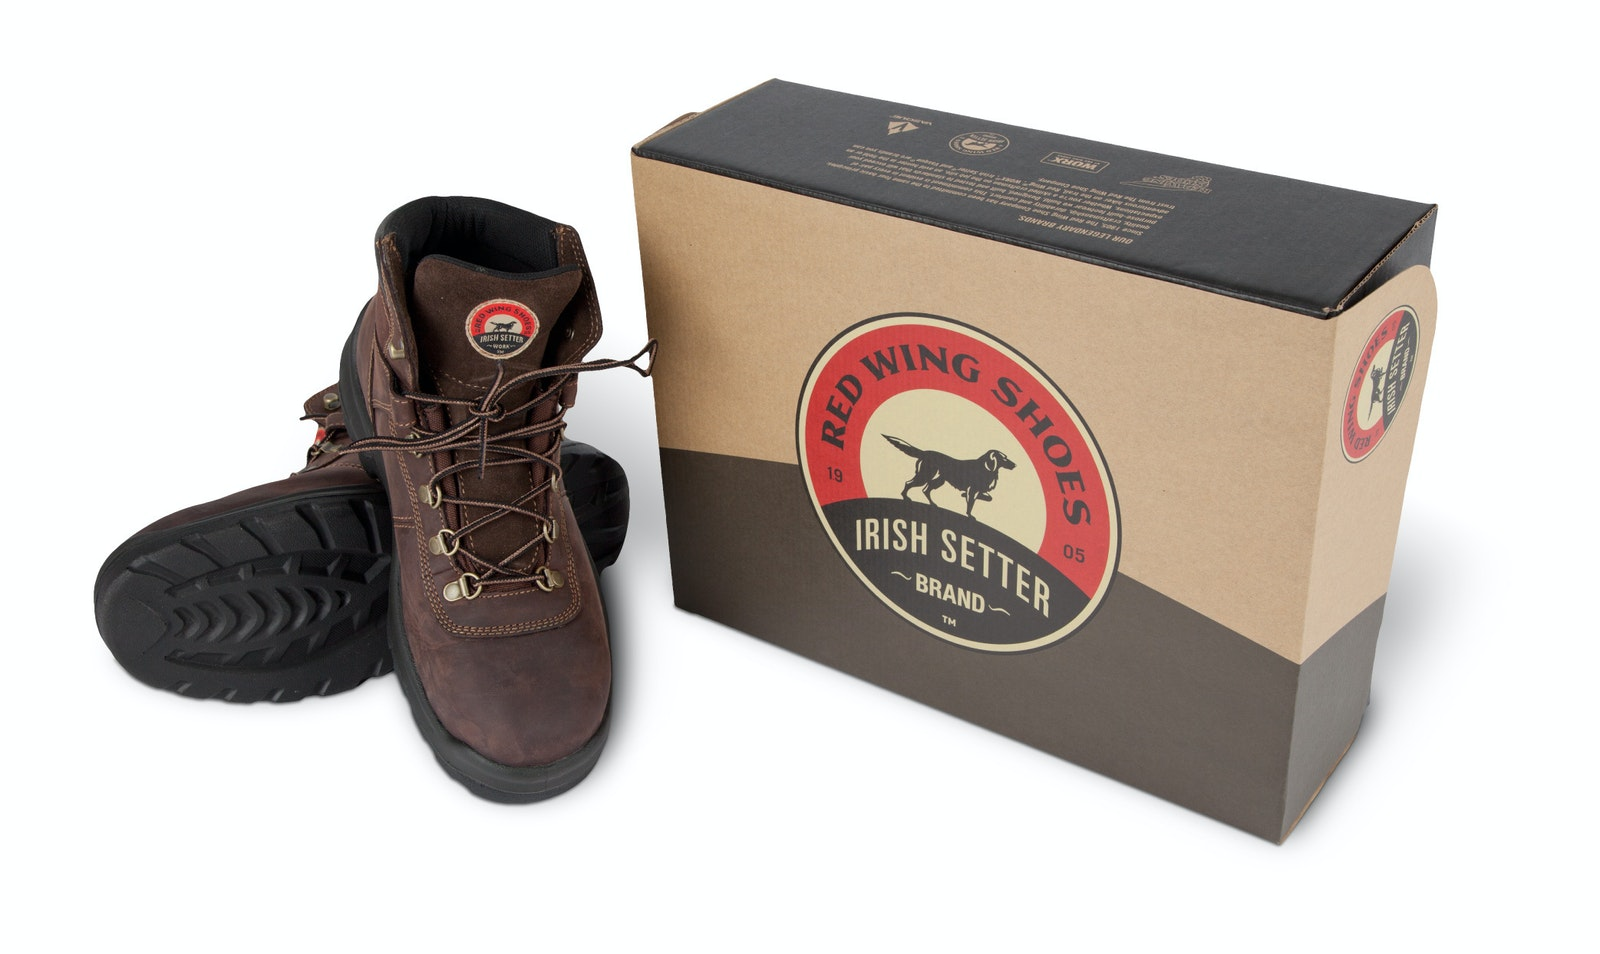 Irishsetter shoebox